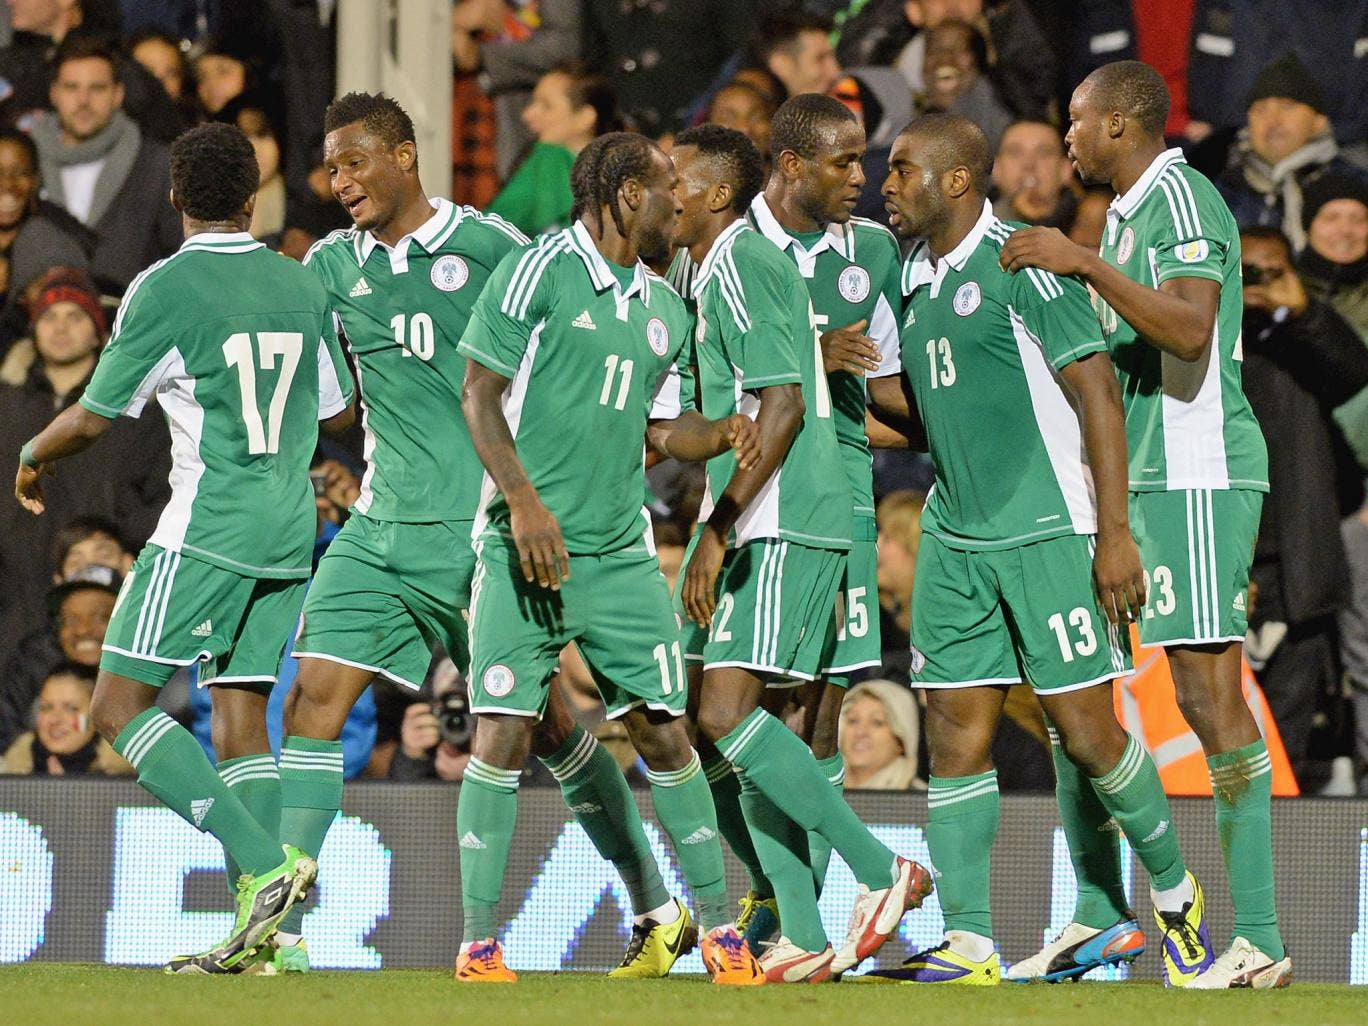 Nigeria players during a friendly played at Craven Cottage last year